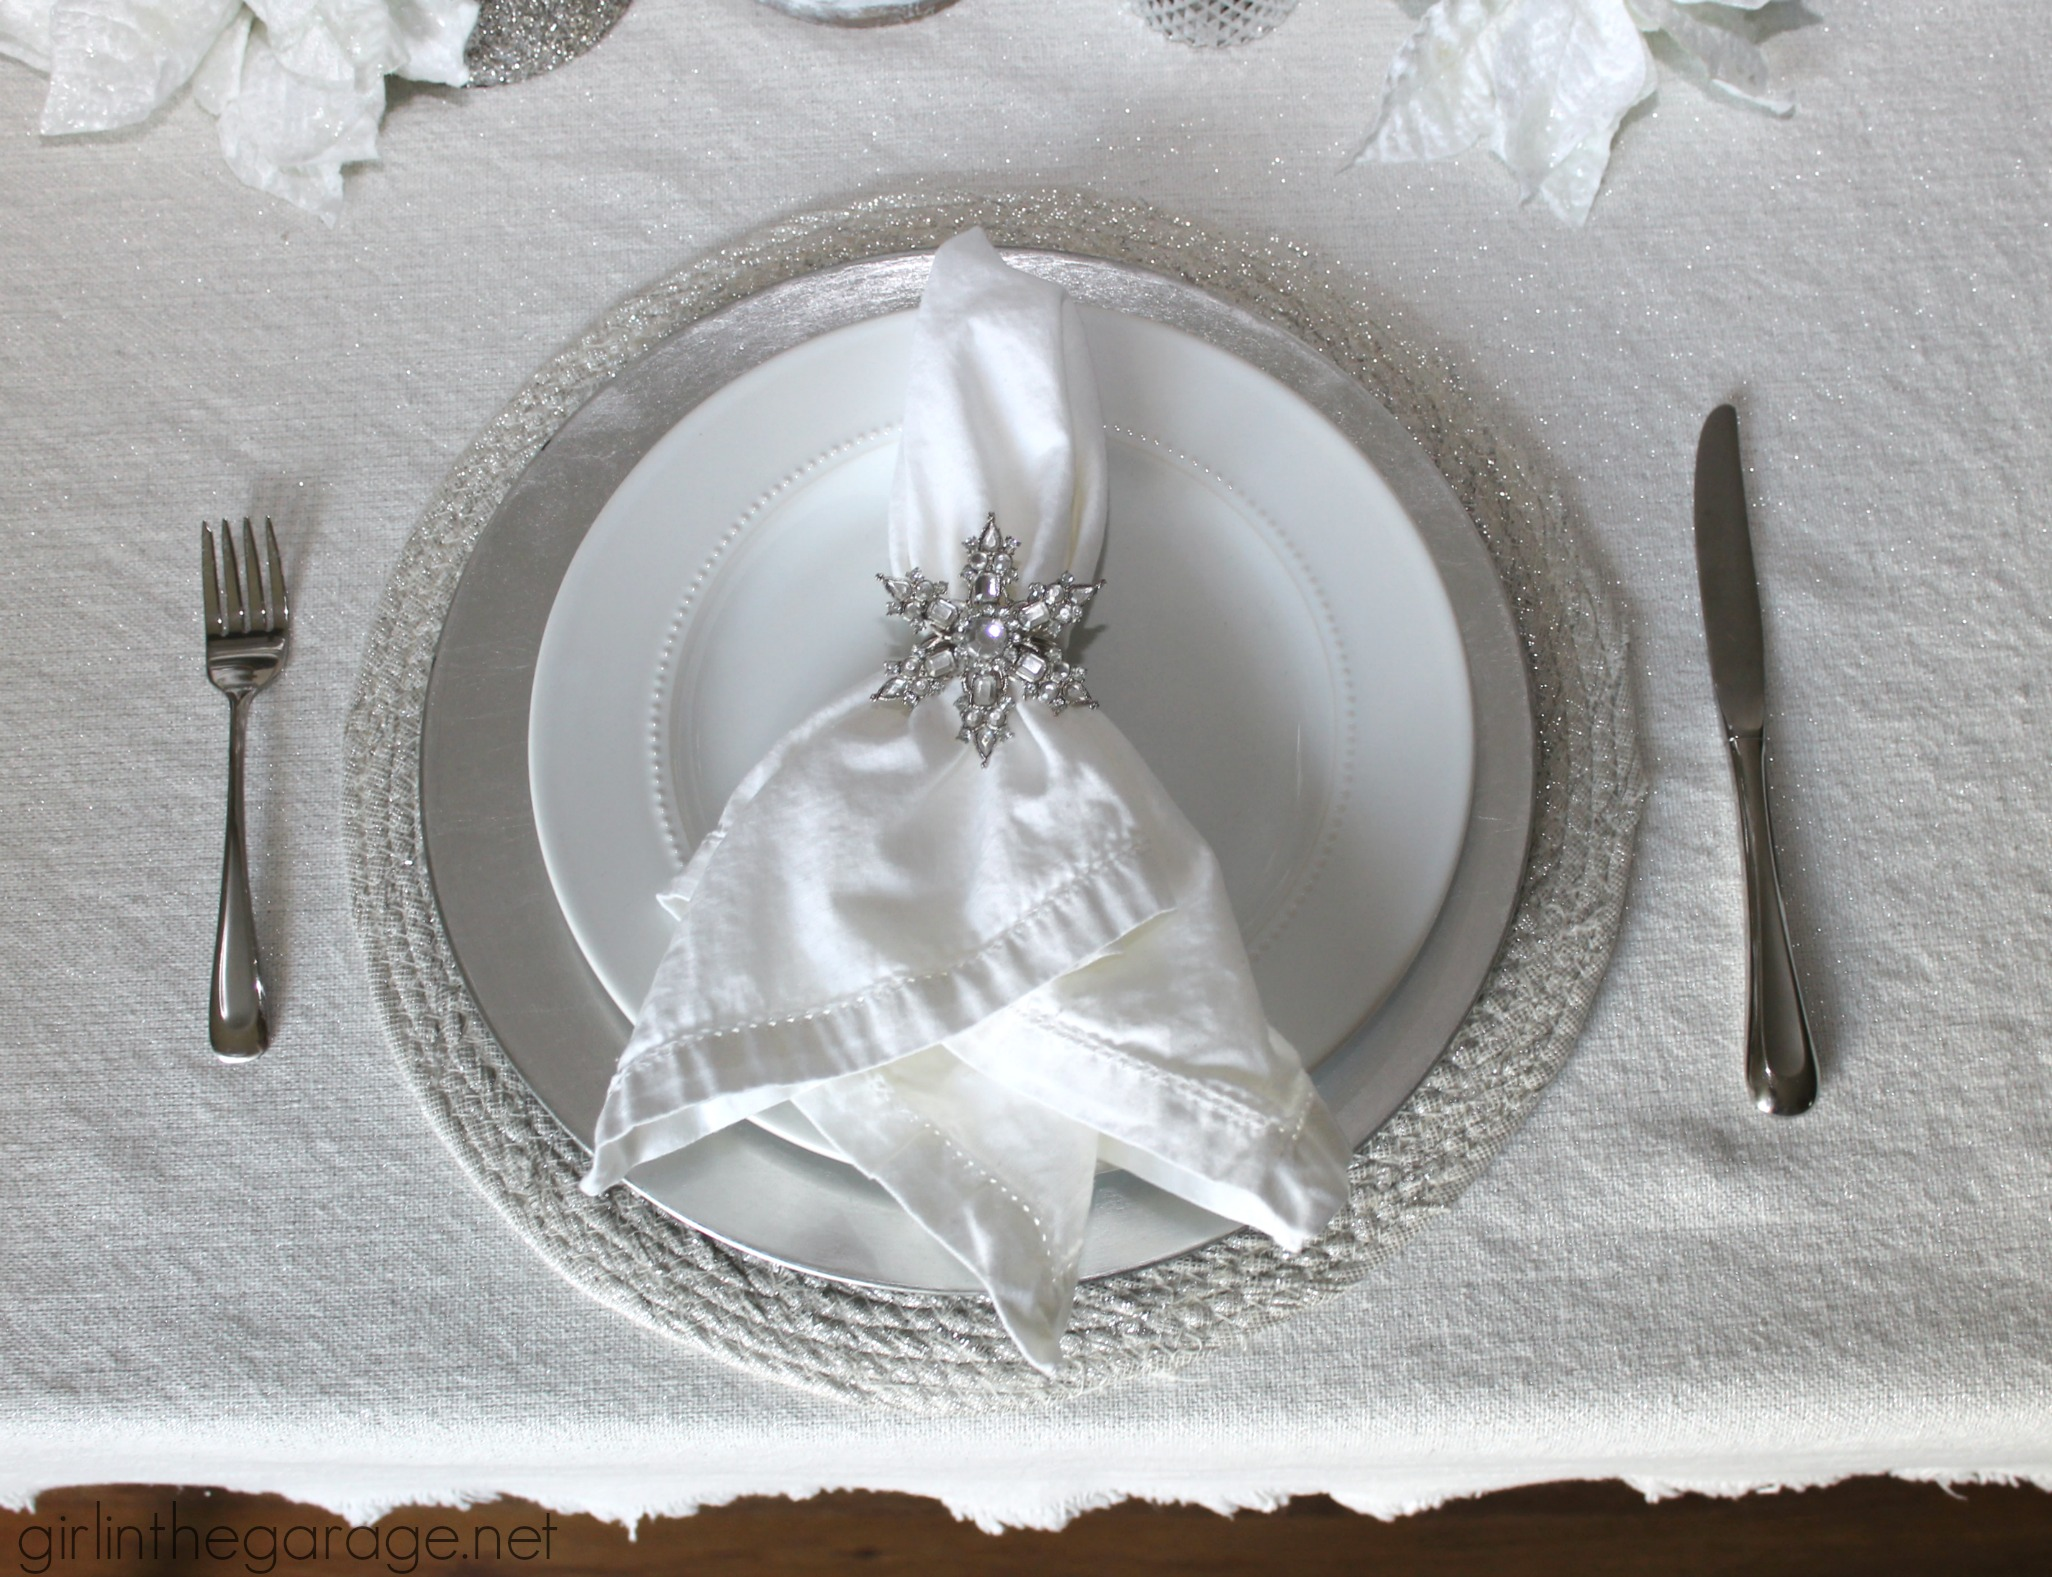 White And Silver Holiday Tablescape Girl In The Garage